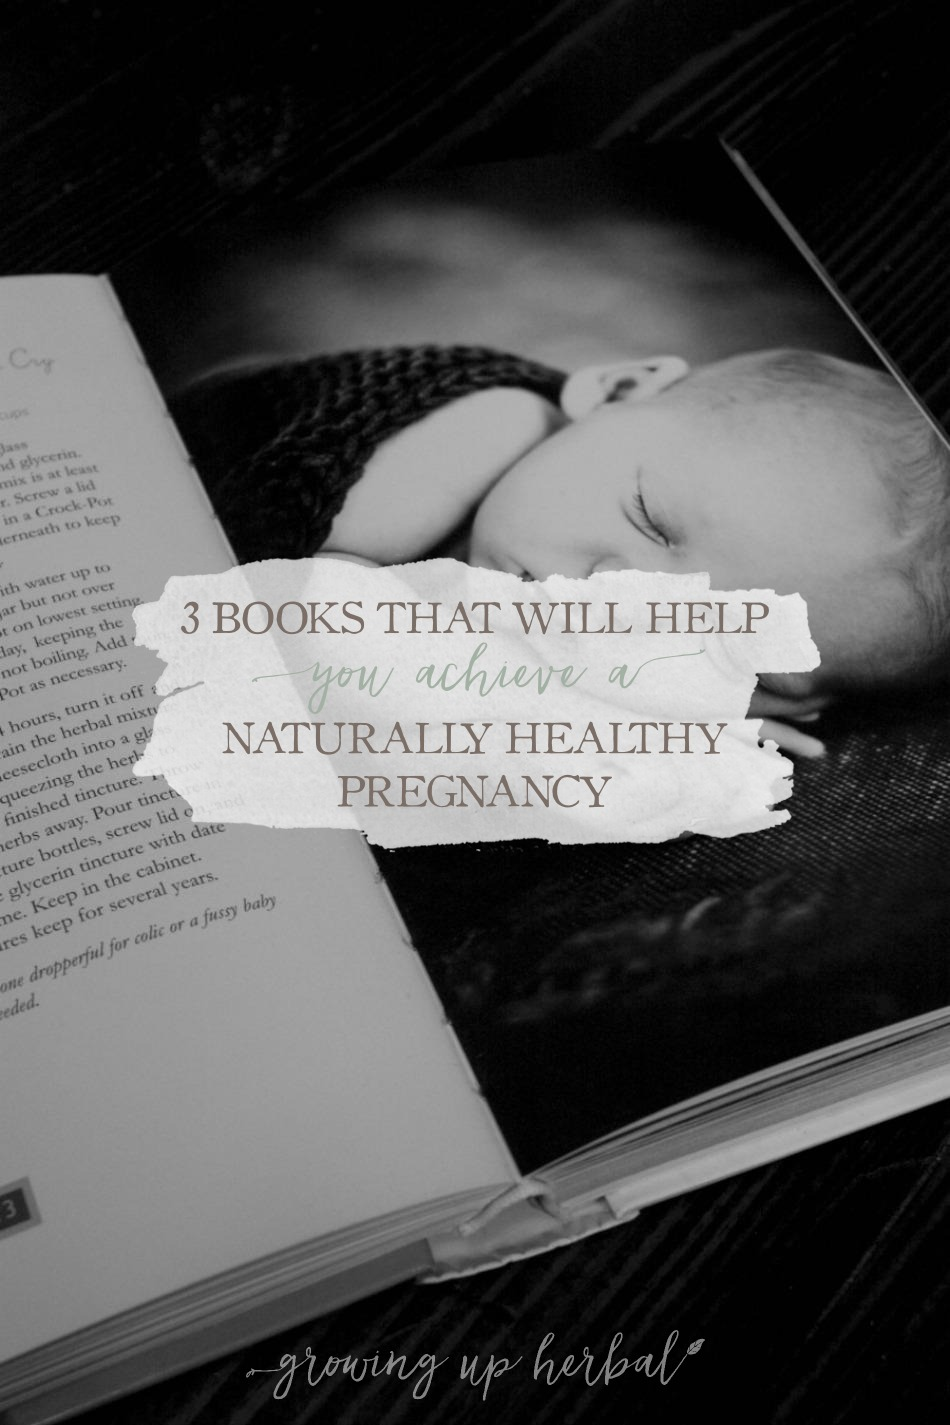 3 Books That Will Help You Achieve A Naturally Healthy Pregnancy | Growing Up Herbal | Here are my 3 favorite books for helping have a naturally healthy pregnancy!